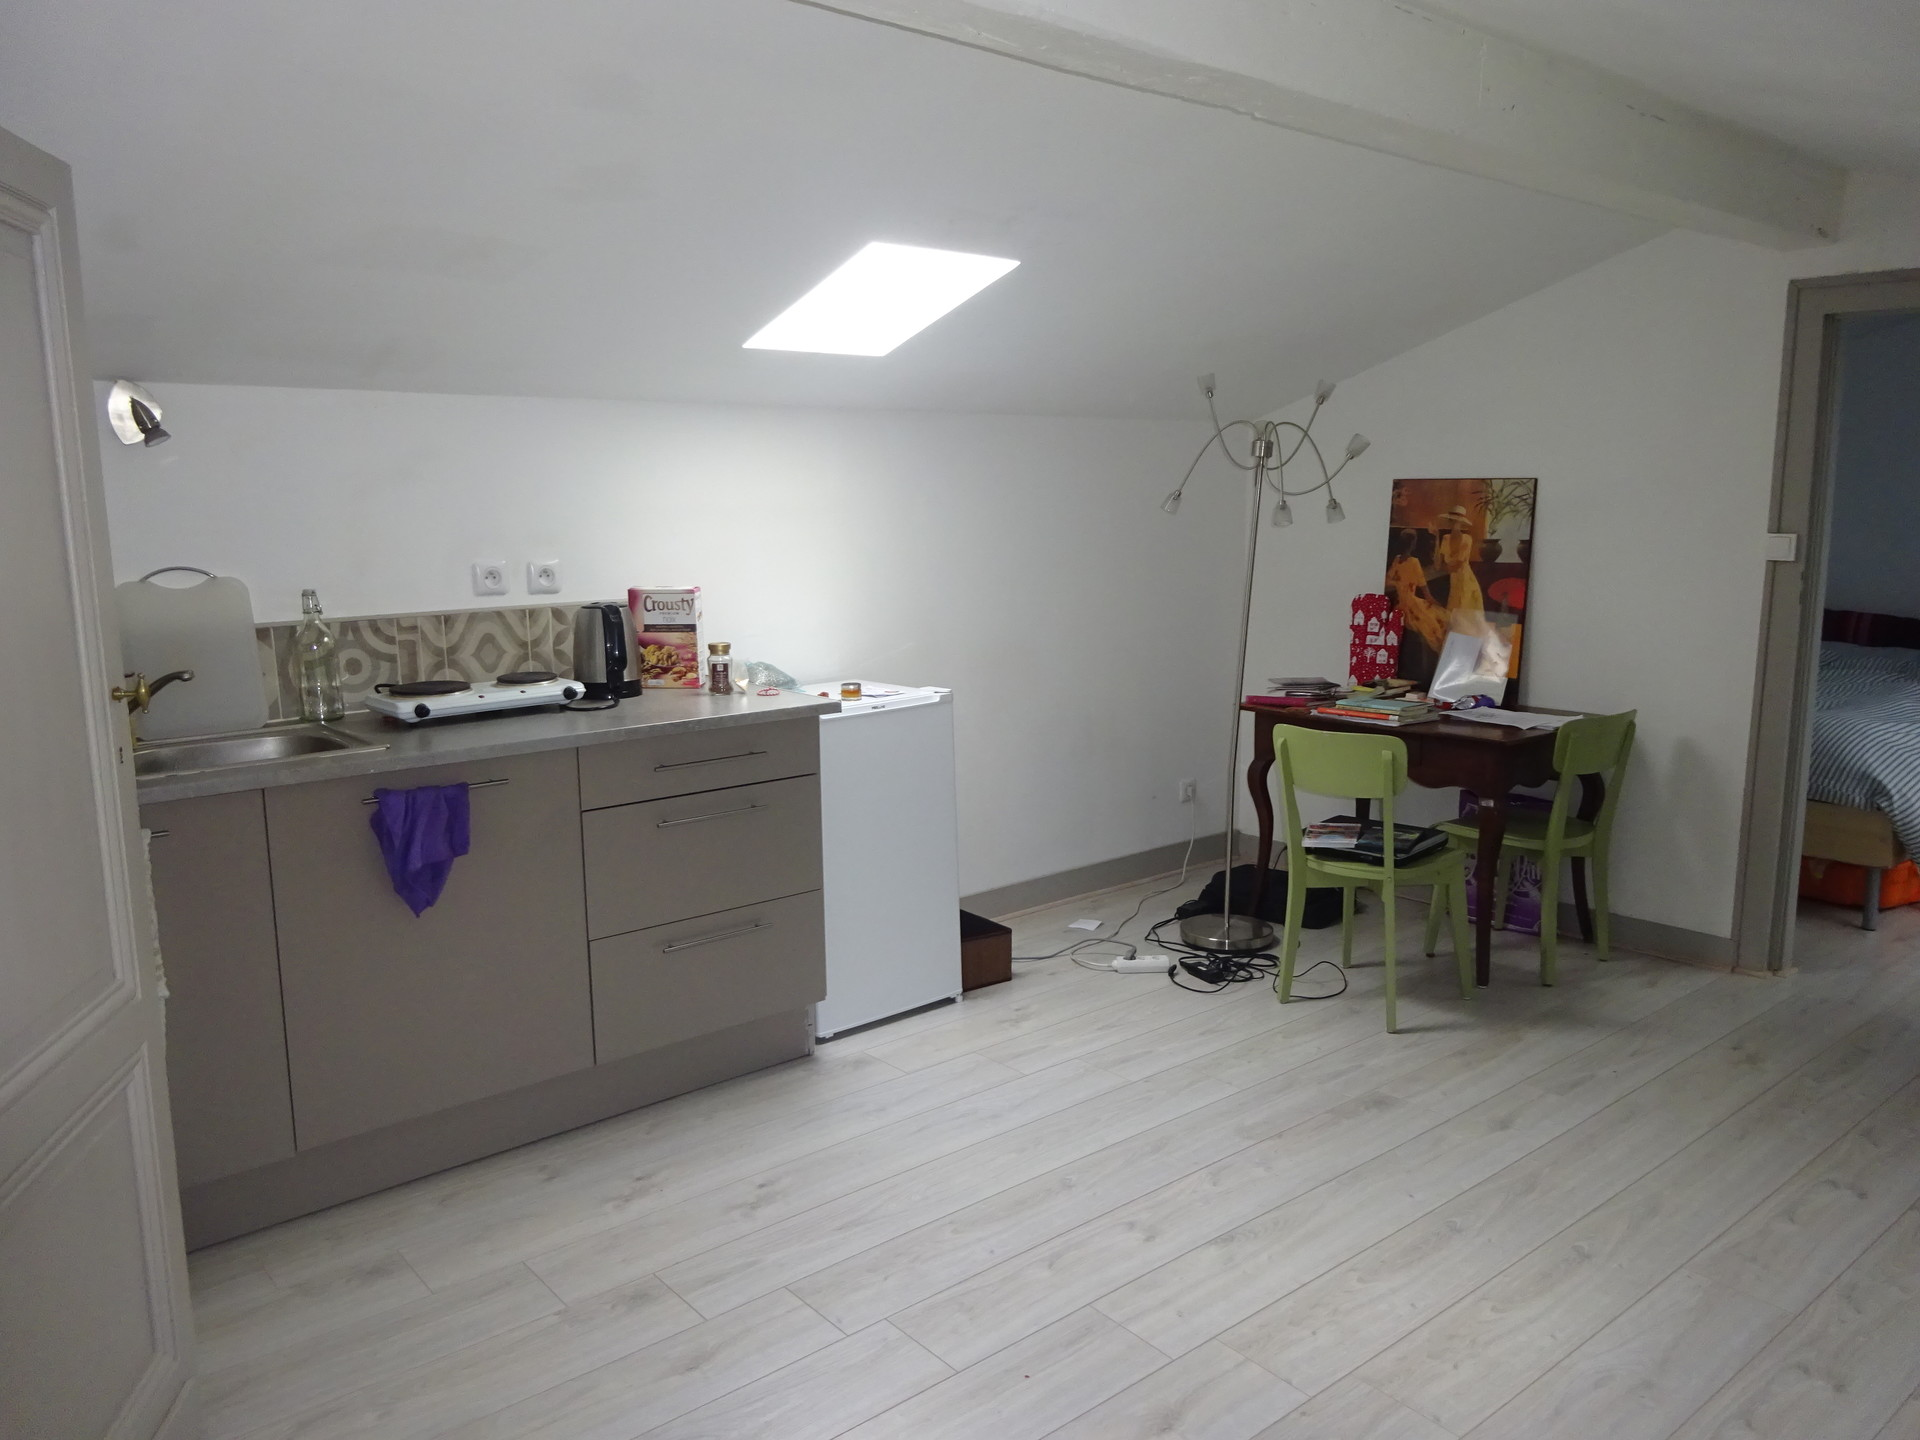 Appartement meubl de 30m2 nansouty location for Location appartement bordeaux 40m2